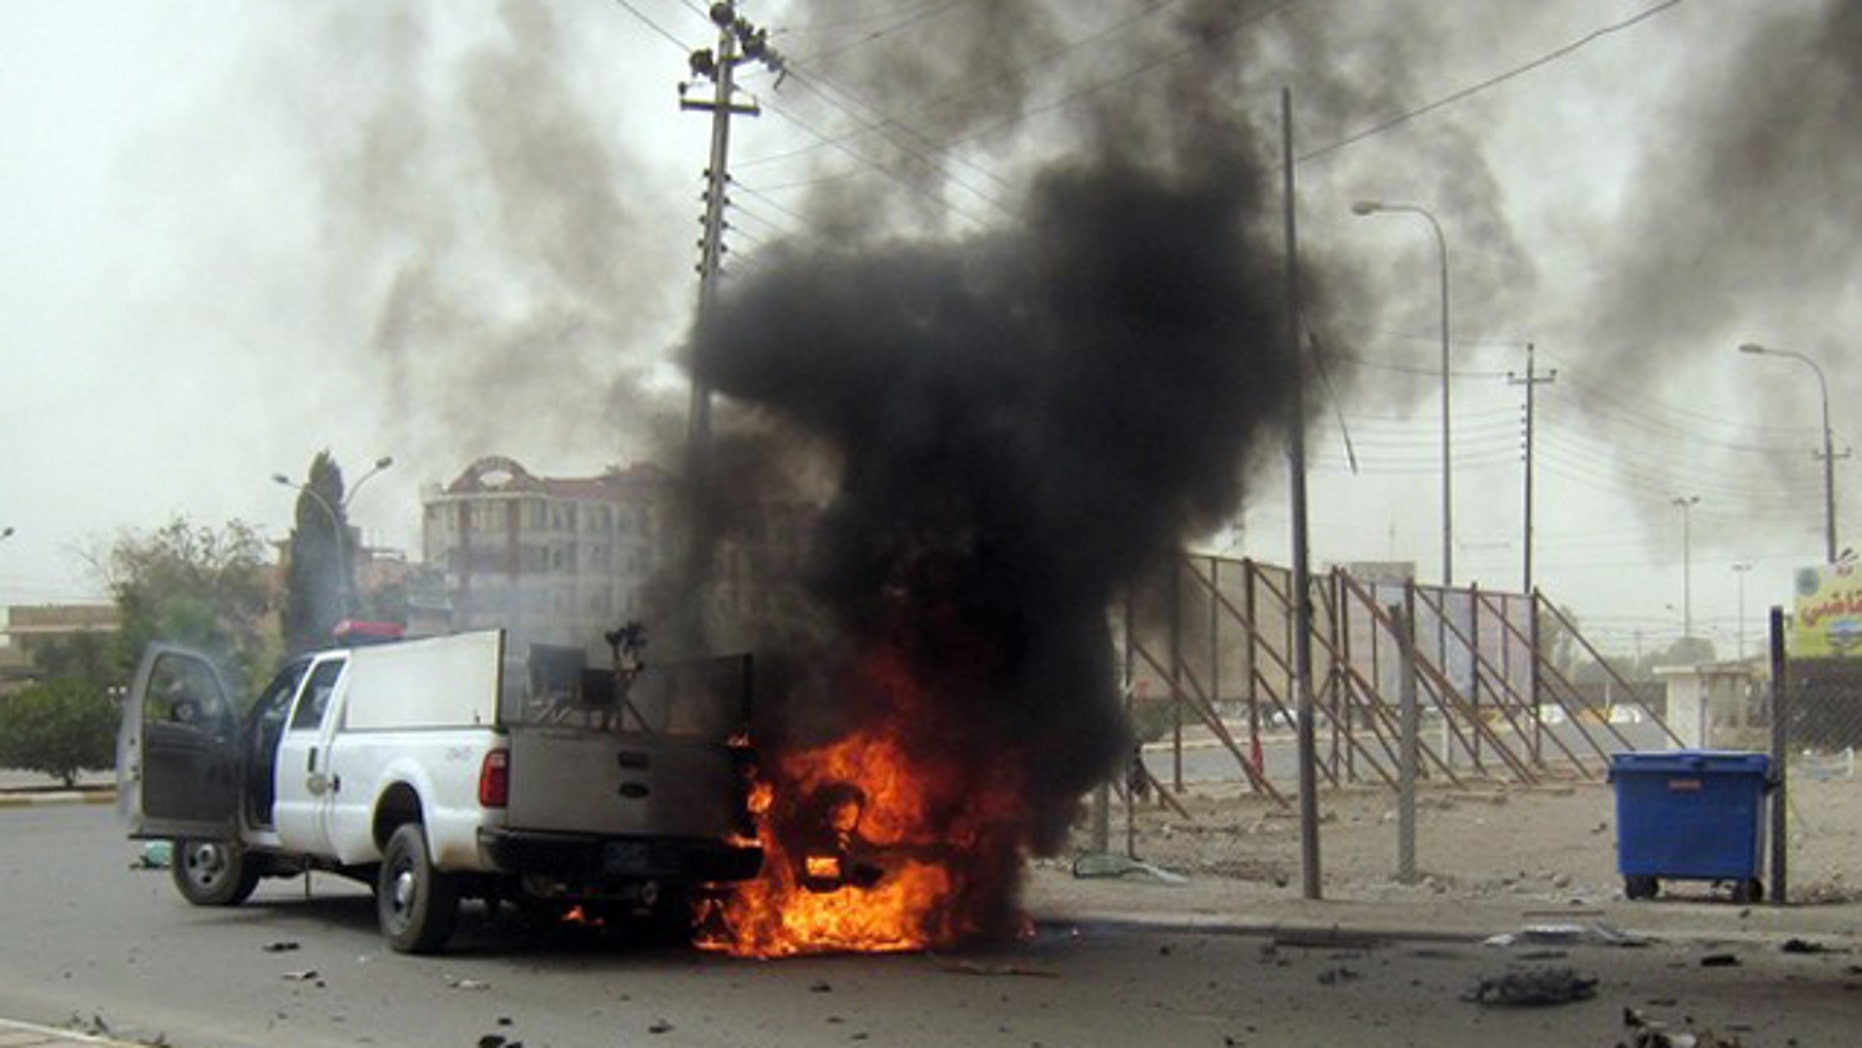 May 19: A car burns following a bomb attack in the northern oil-rich city of Kirkuk, killing at least 27 people.